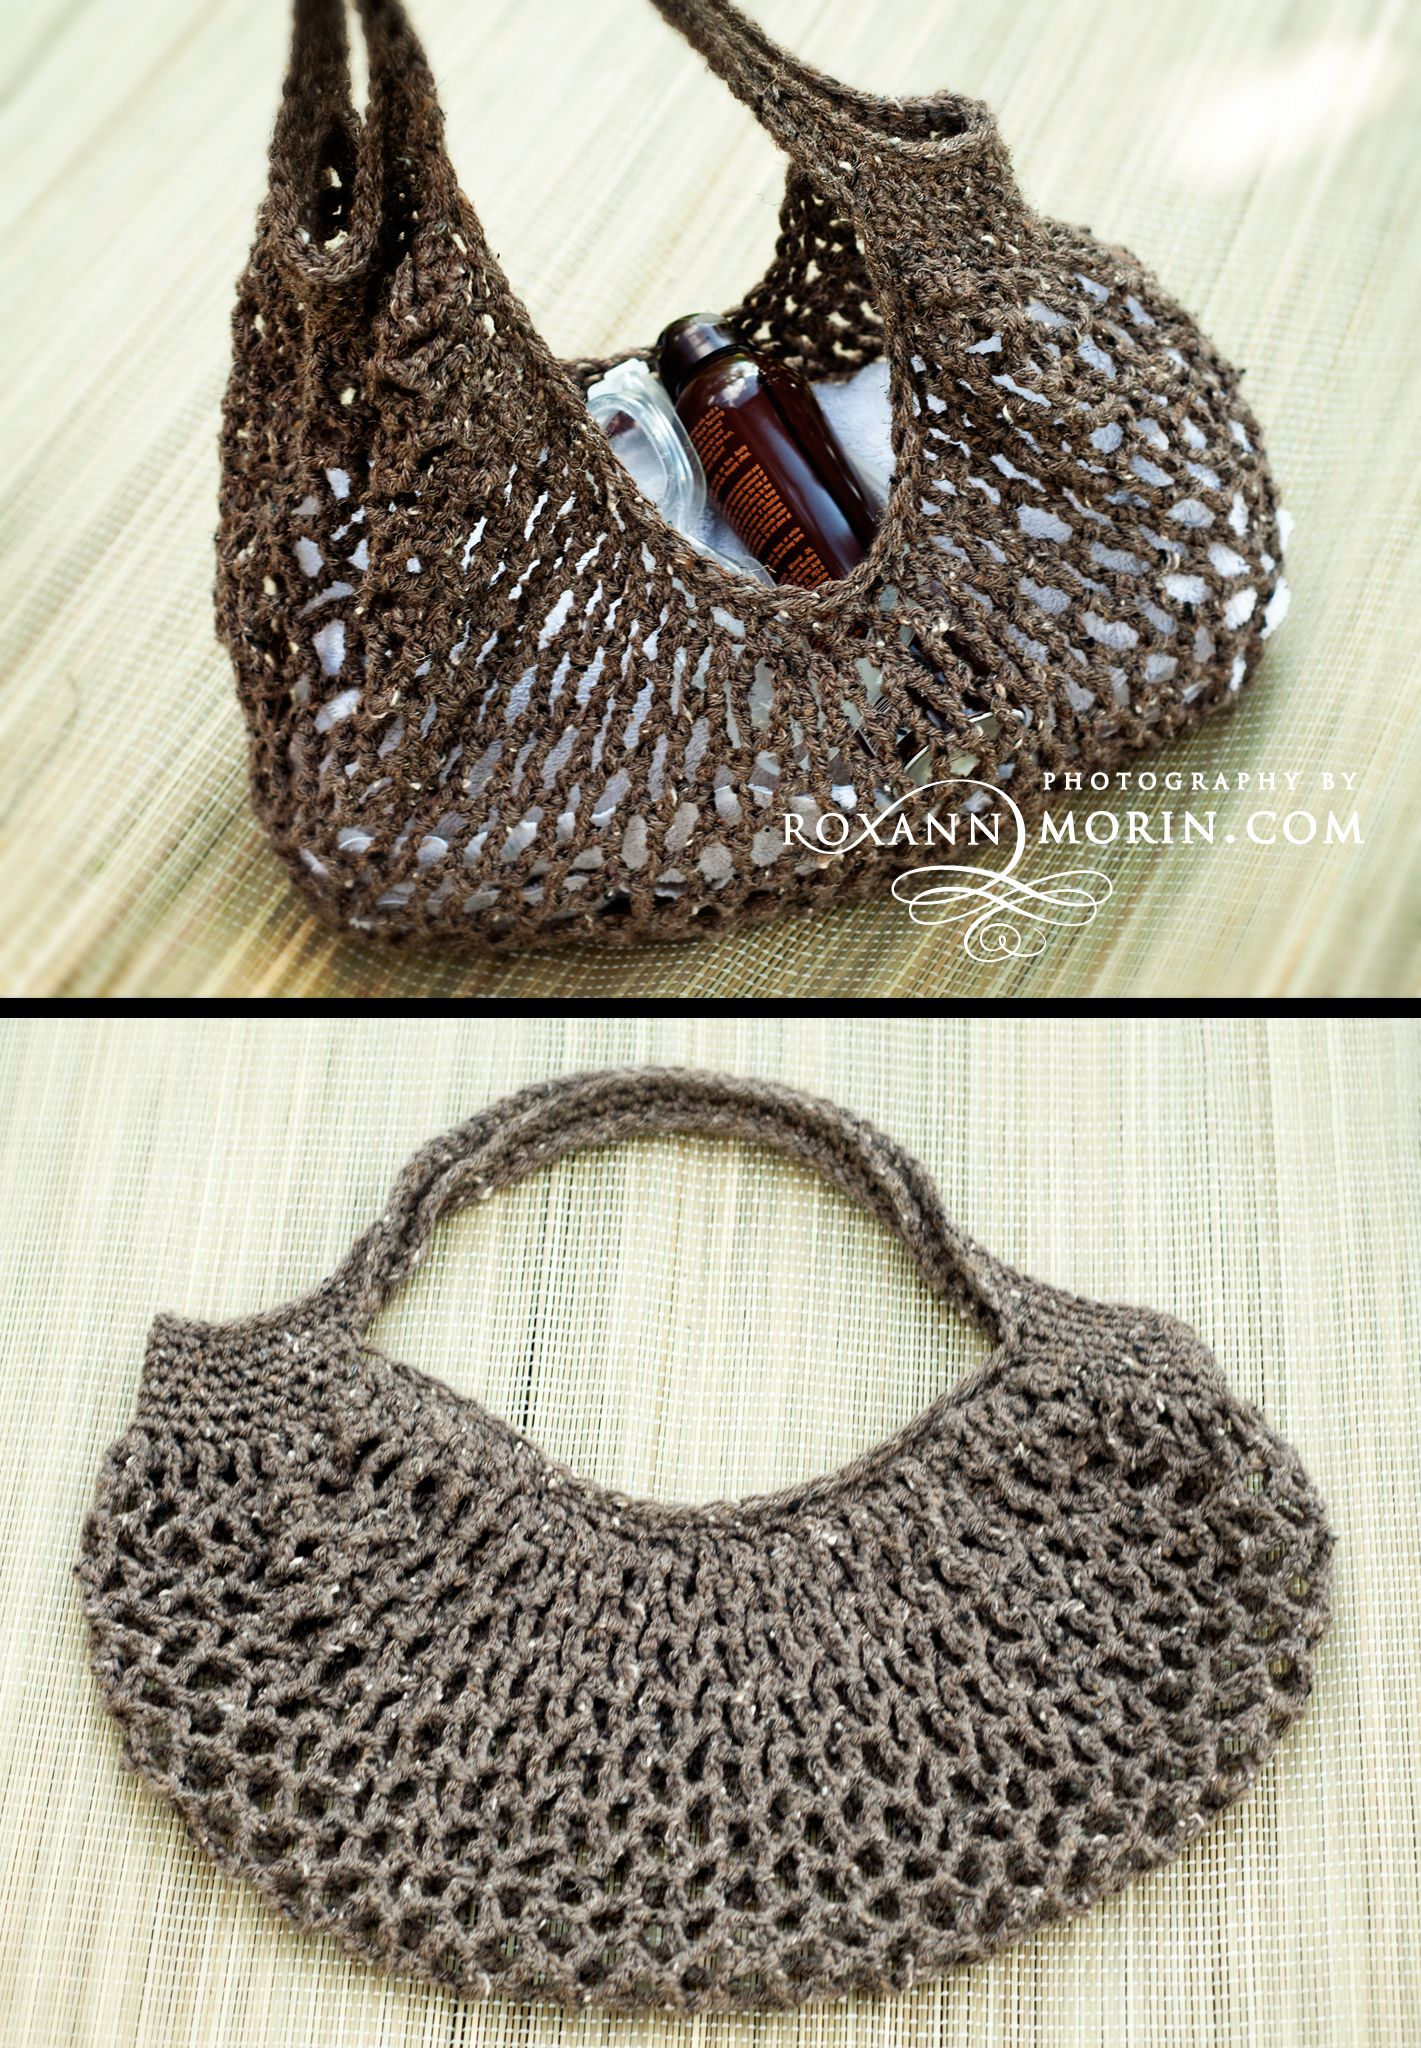 Eclecticcrochets pool bag free crochet bag crocheted bags and eclecticcrochets pool bag crochet hobo bagfree bankloansurffo Image collections